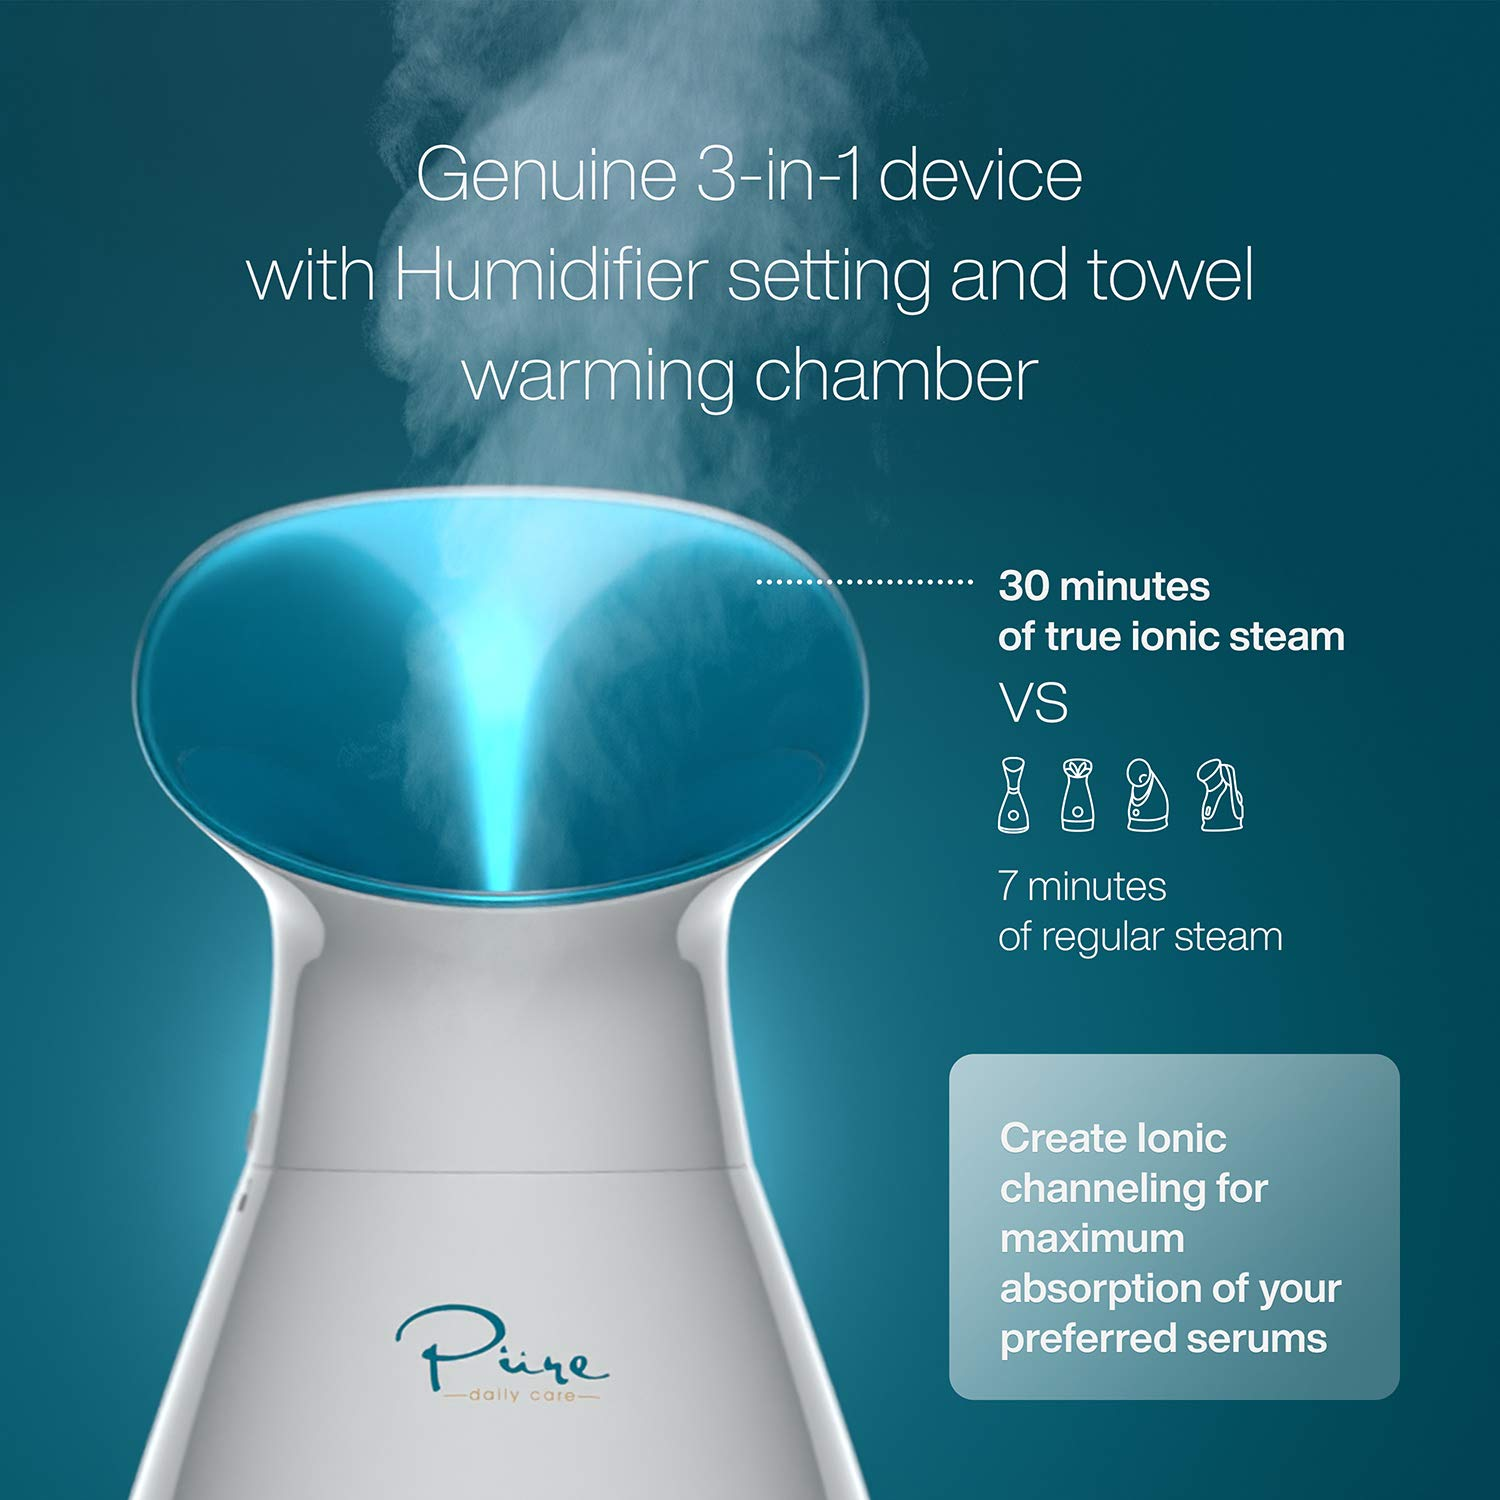 Amazon.com: NanoSteamer Large 3-in-1 Nano Ionic Facial Steamer with Precise  Temp Control - 30 Min Steam Time - Humidifier - Unclogs Pores - Blackheads  - Spa Quality - Bonus 5 Piece Stainless Steel Skin Kit: Beauty